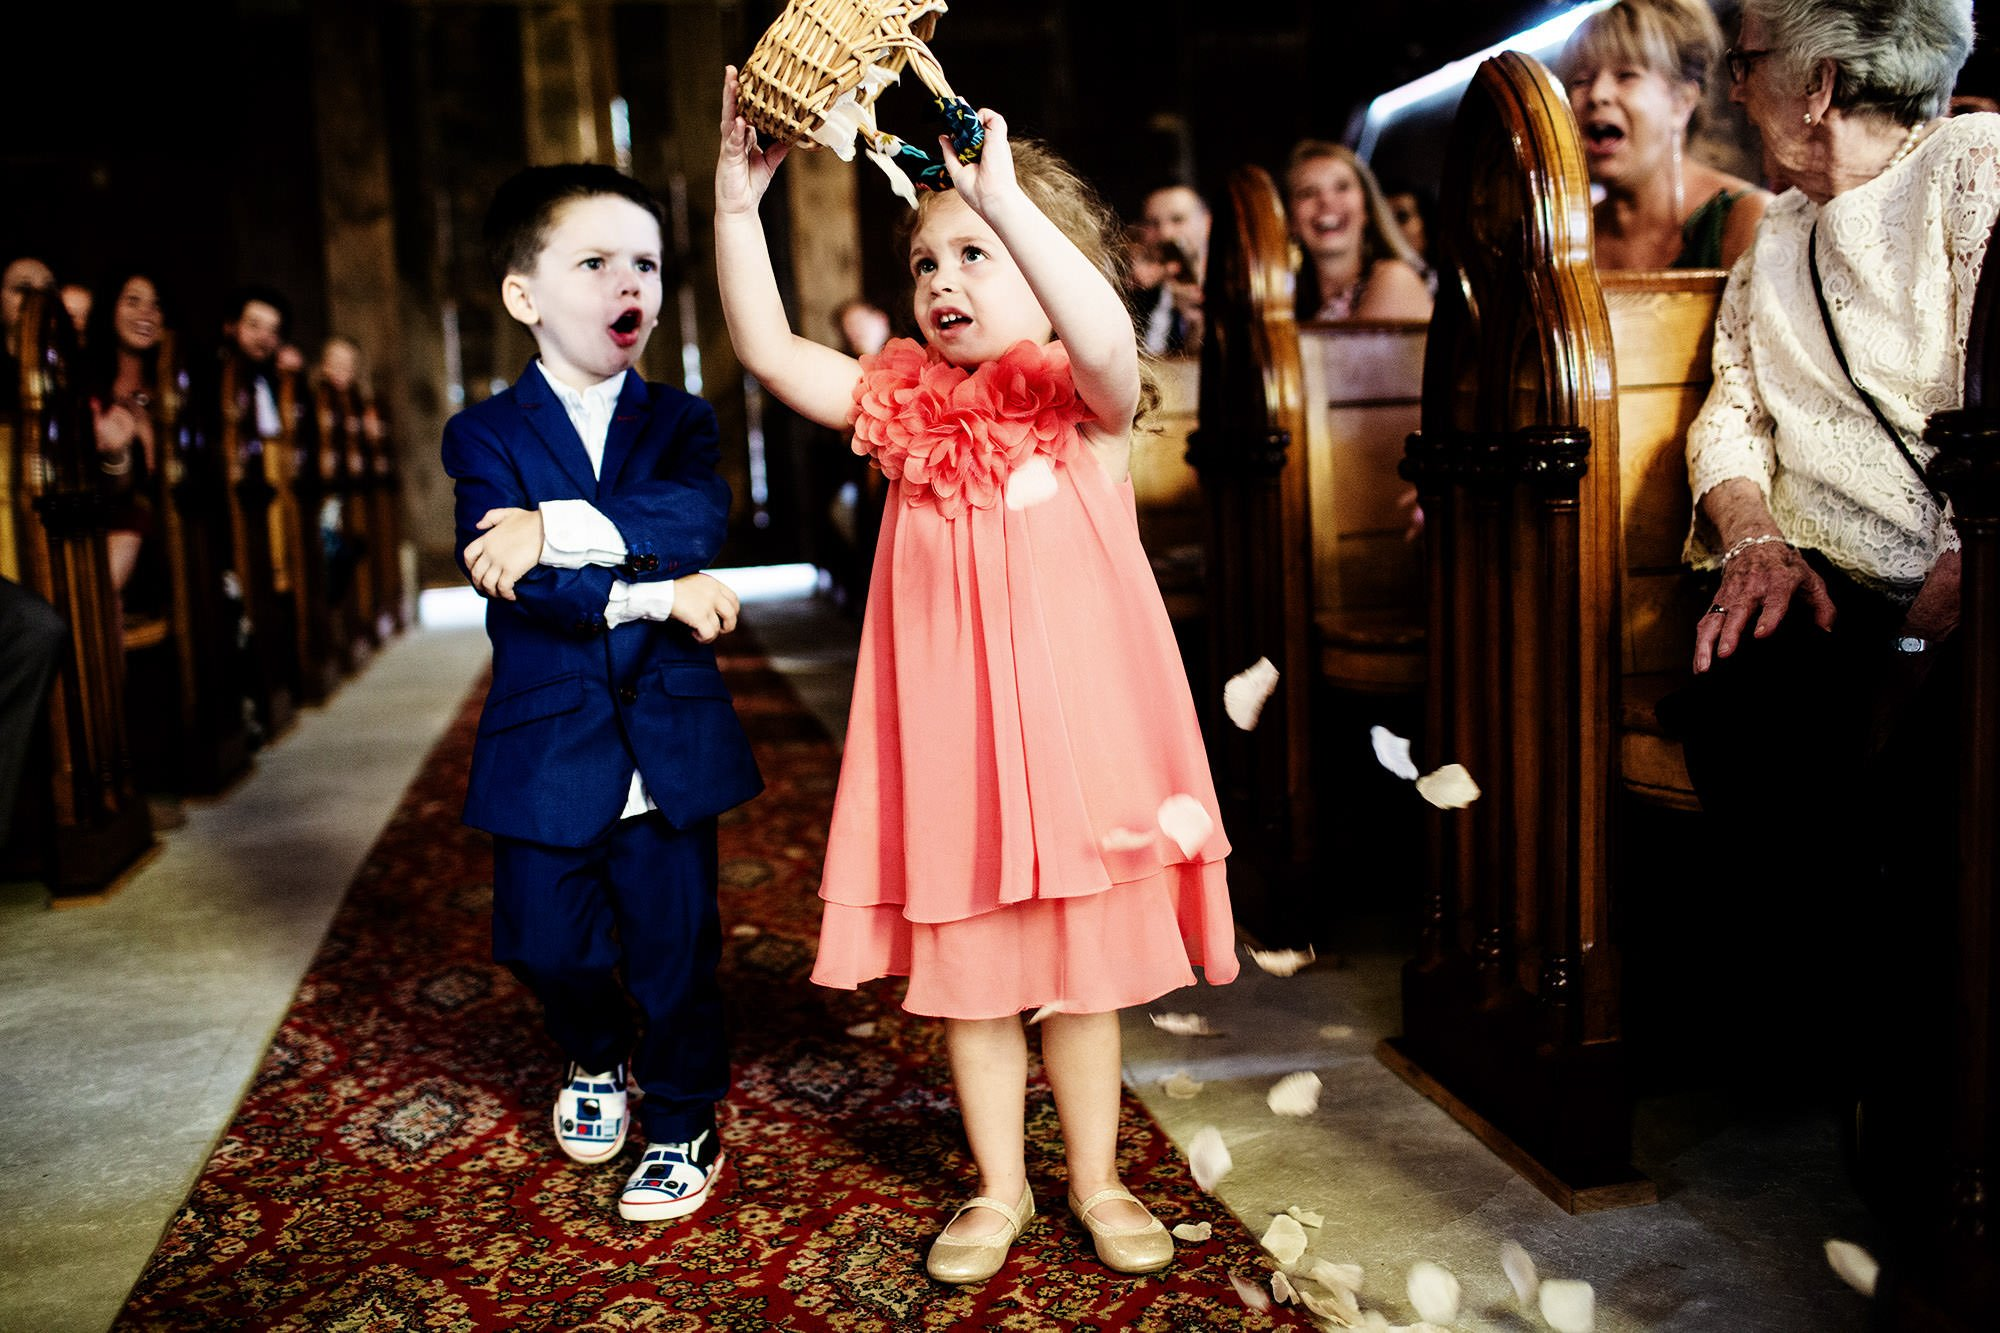 The flower girl unloads her basket in the aisle during the wedding ceremony at Bishop Farm.